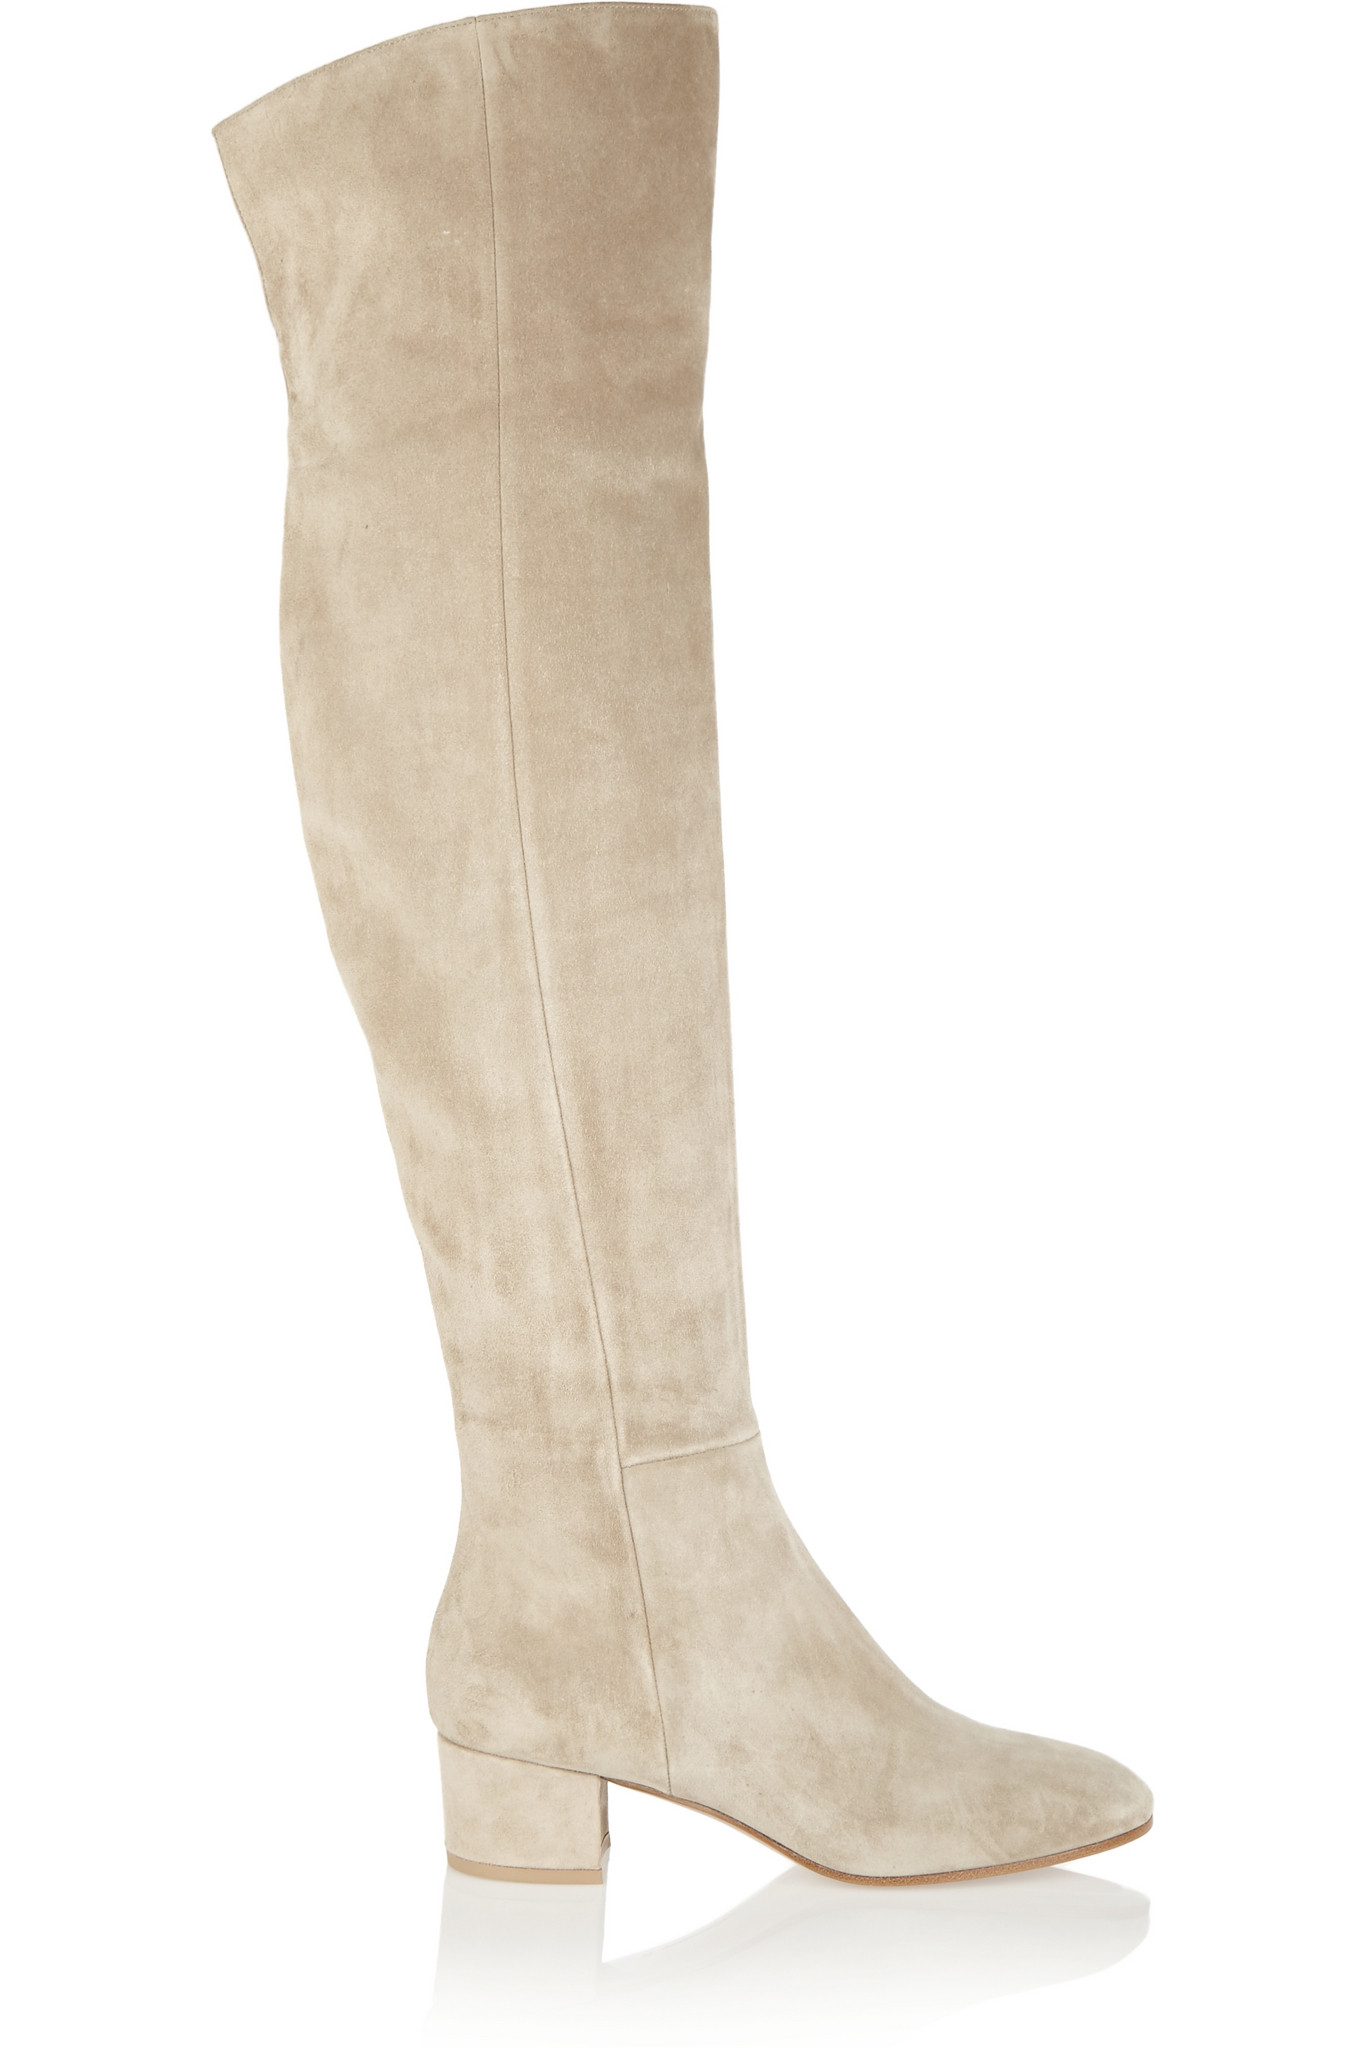 Gianvito rossi Suede Over-the-knee Boots | Lyst